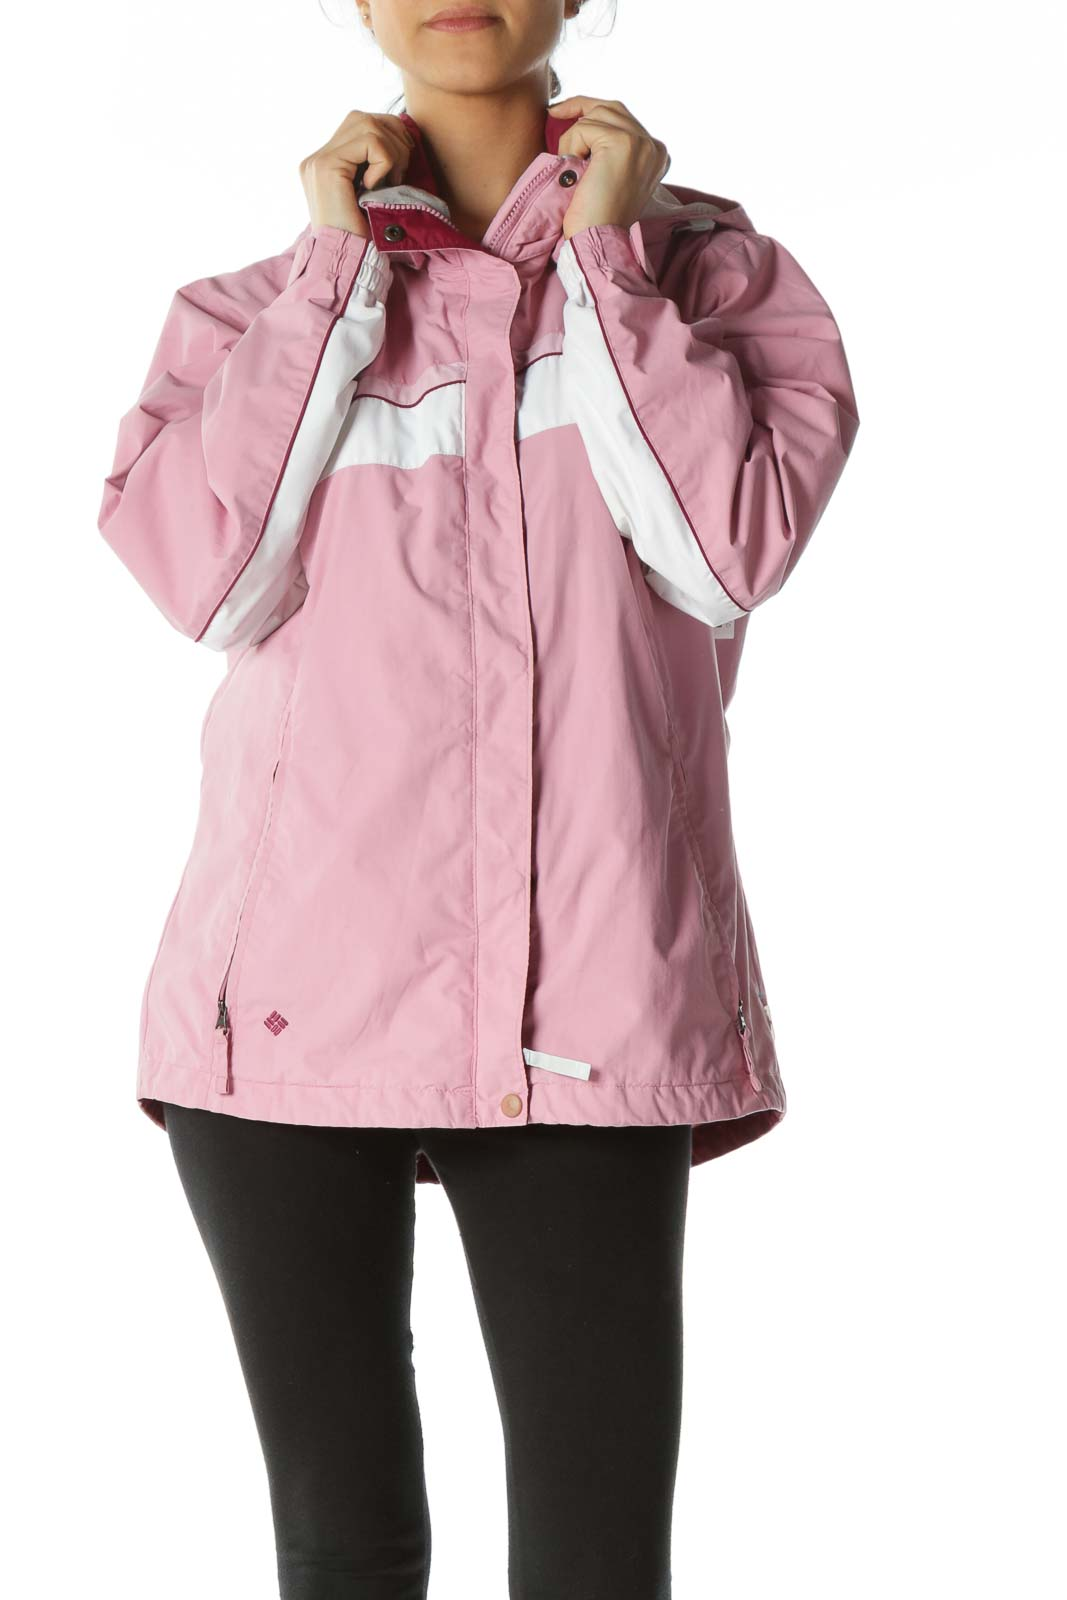 Pink Zippered Pocket Hooded Jacket